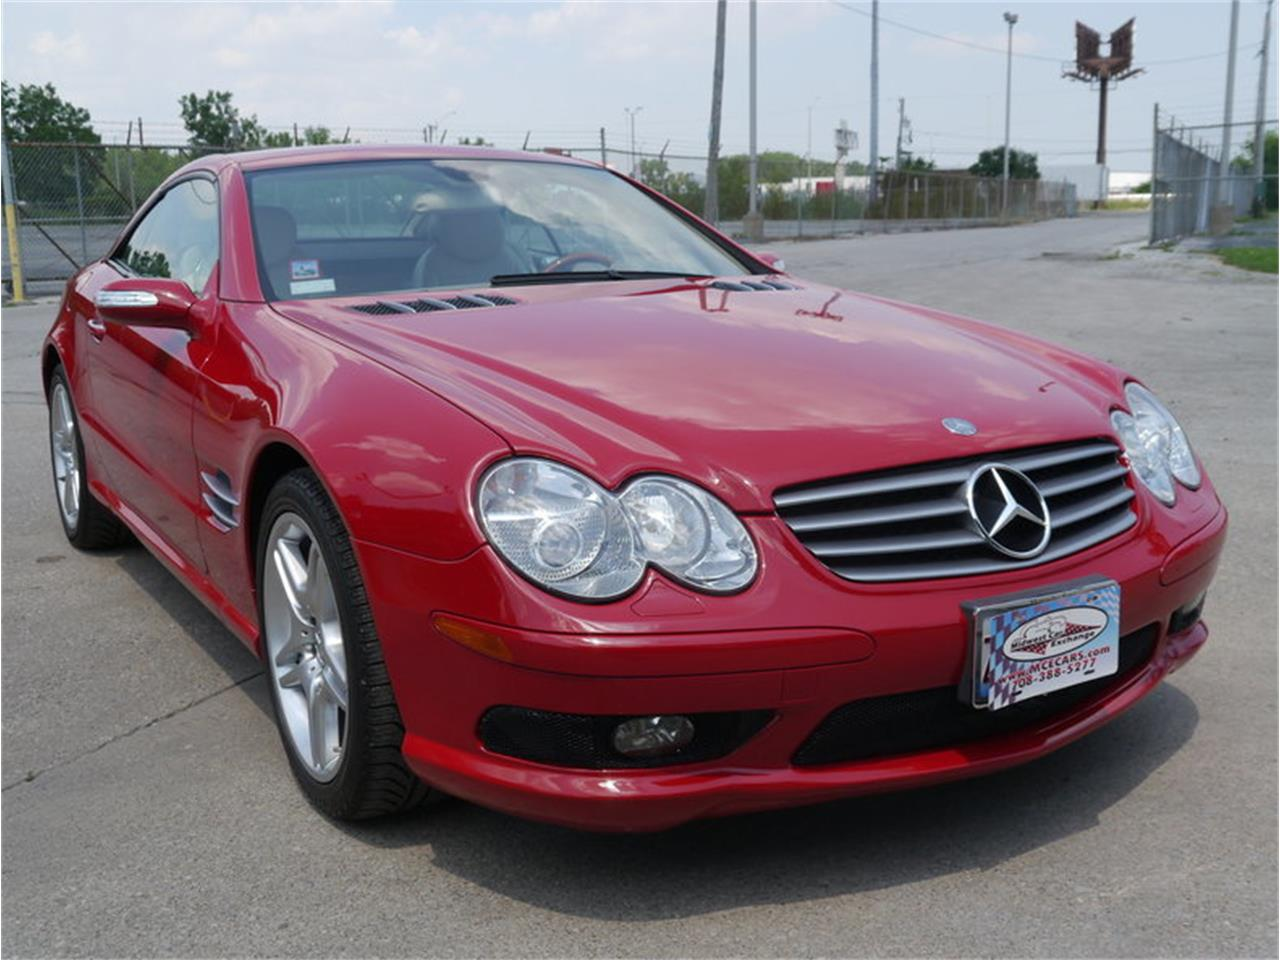 Large Picture of 2006 Mercedes-Benz SL500 located in Illinois - $26,900.00 Offered by Midwest Car Exchange - LEGR